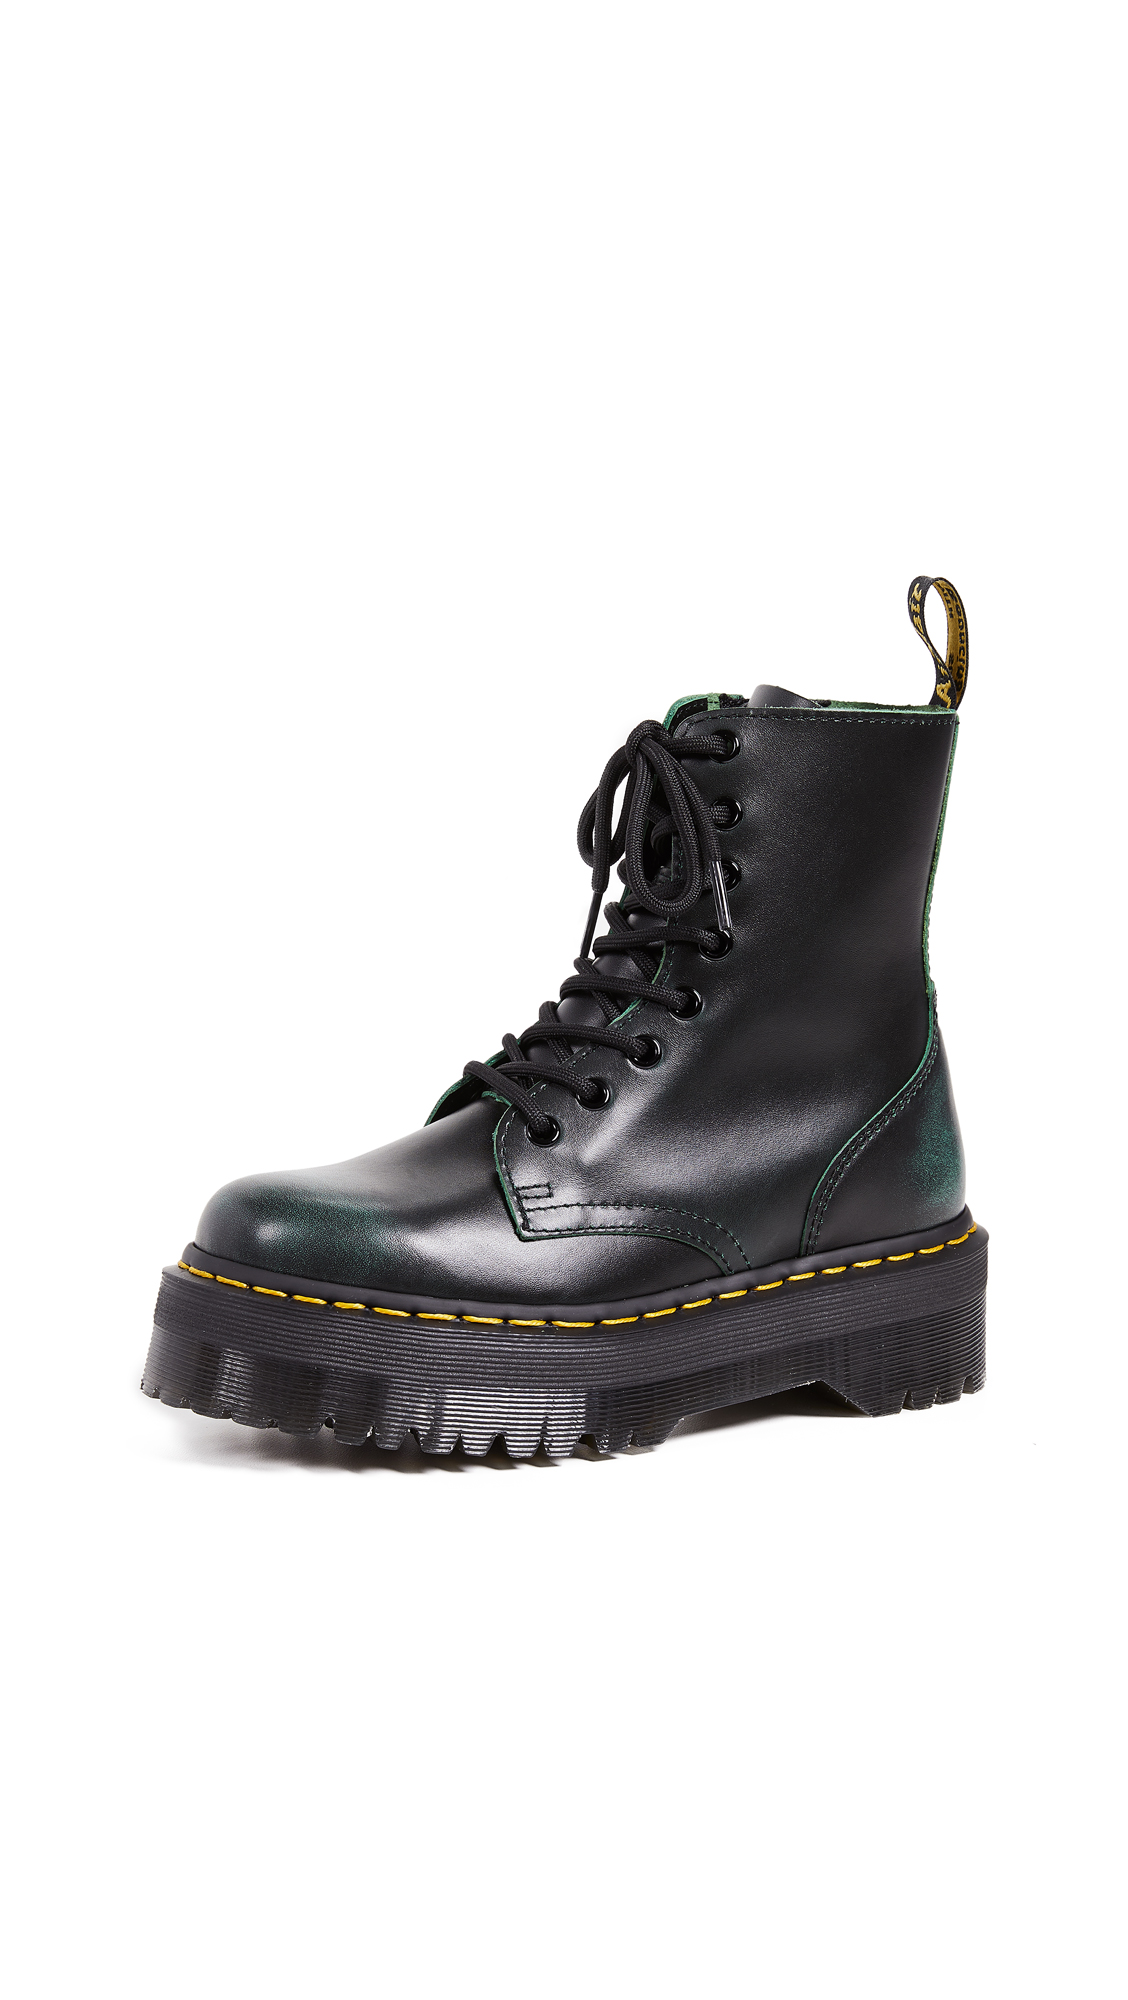 Dr. Martens Jadon 8 Eye Boots In Green